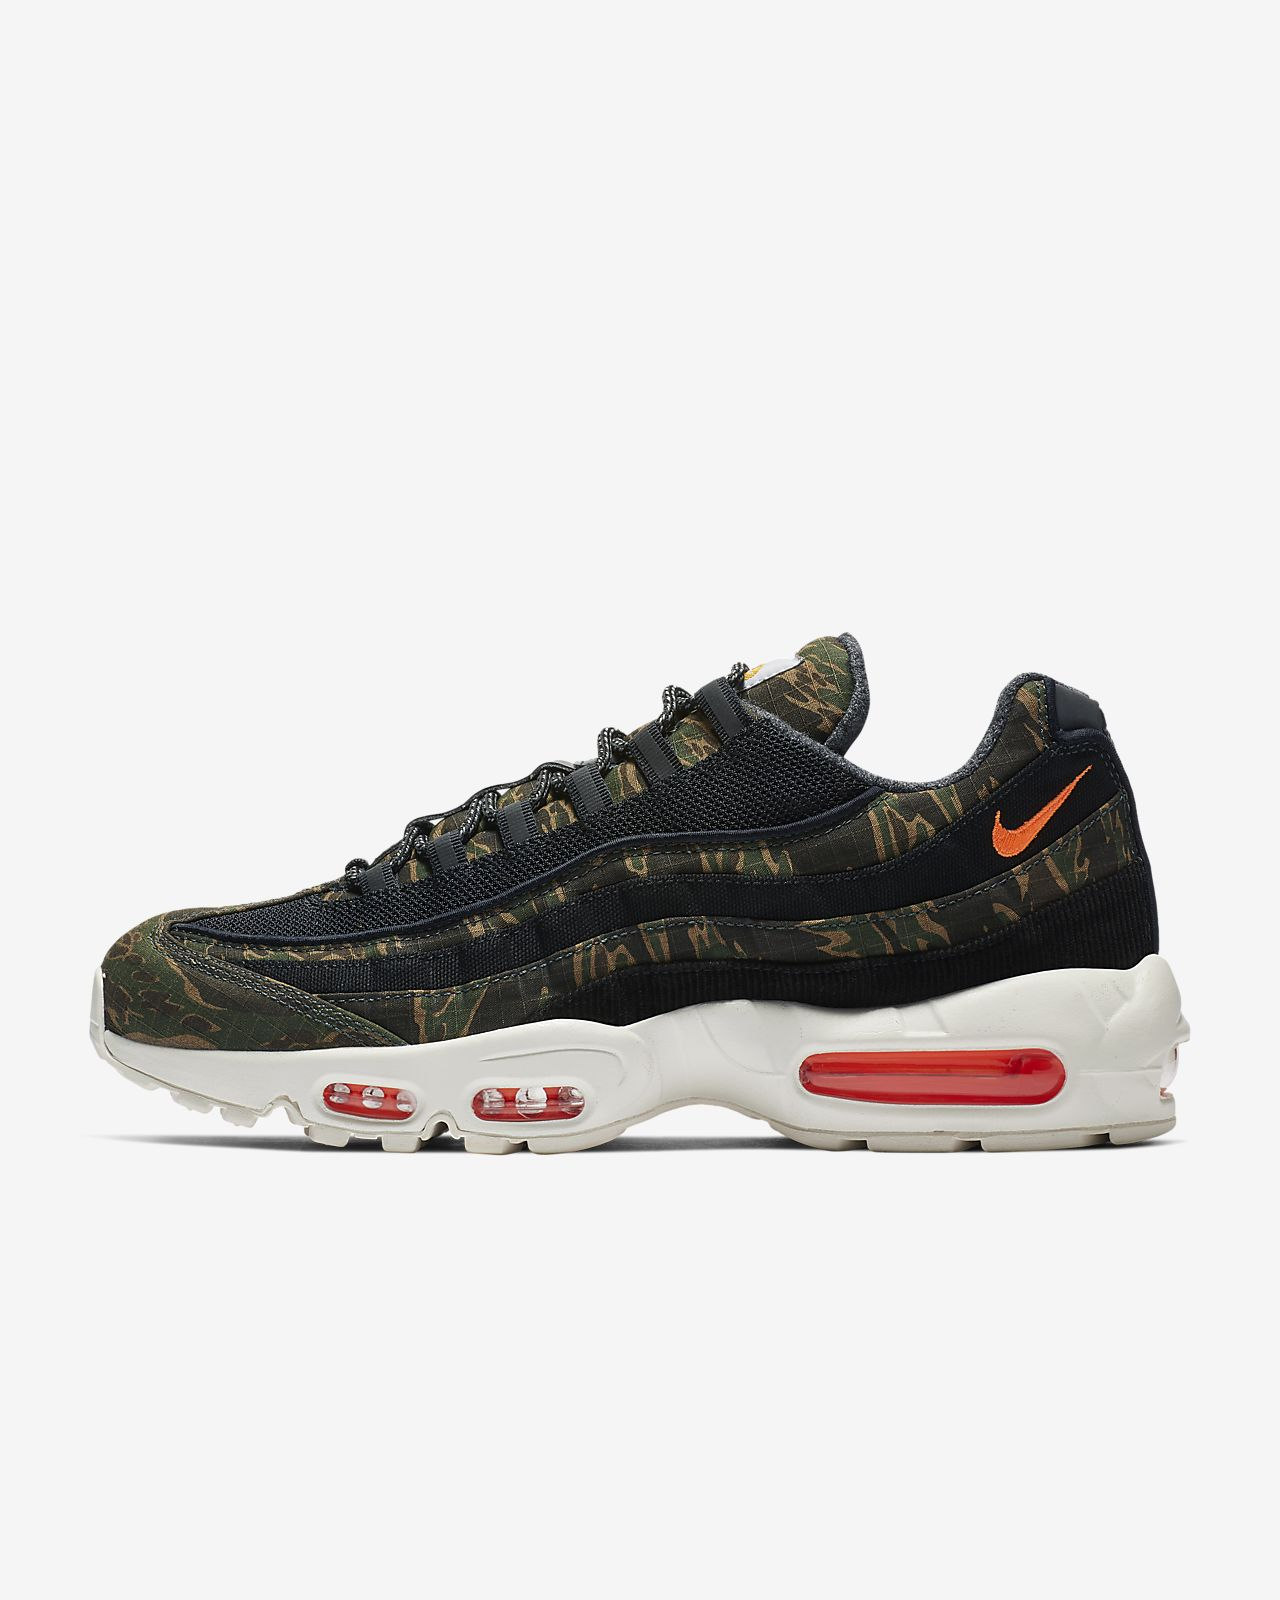 Nike x Carhartt WIP Air Max 95 Men's Shoe